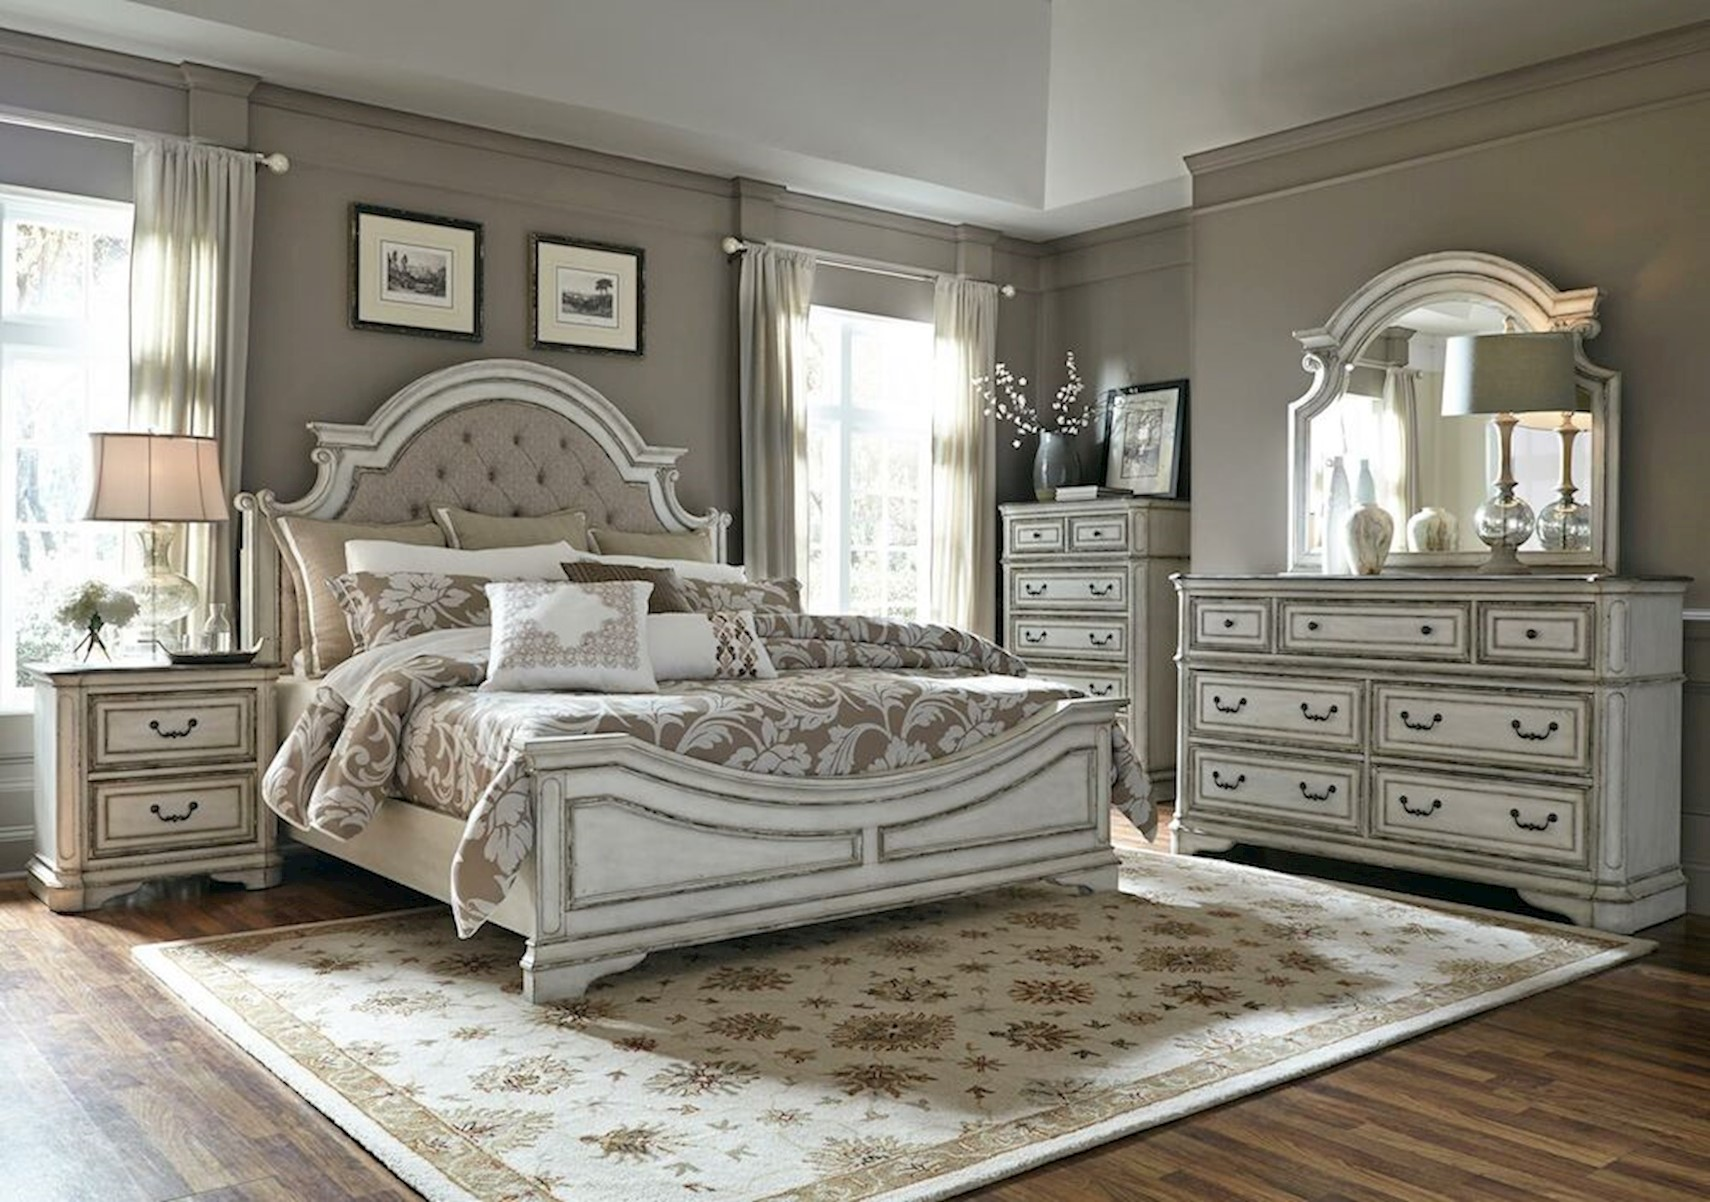 au queen piece akira norman harvey bedroom suite buy